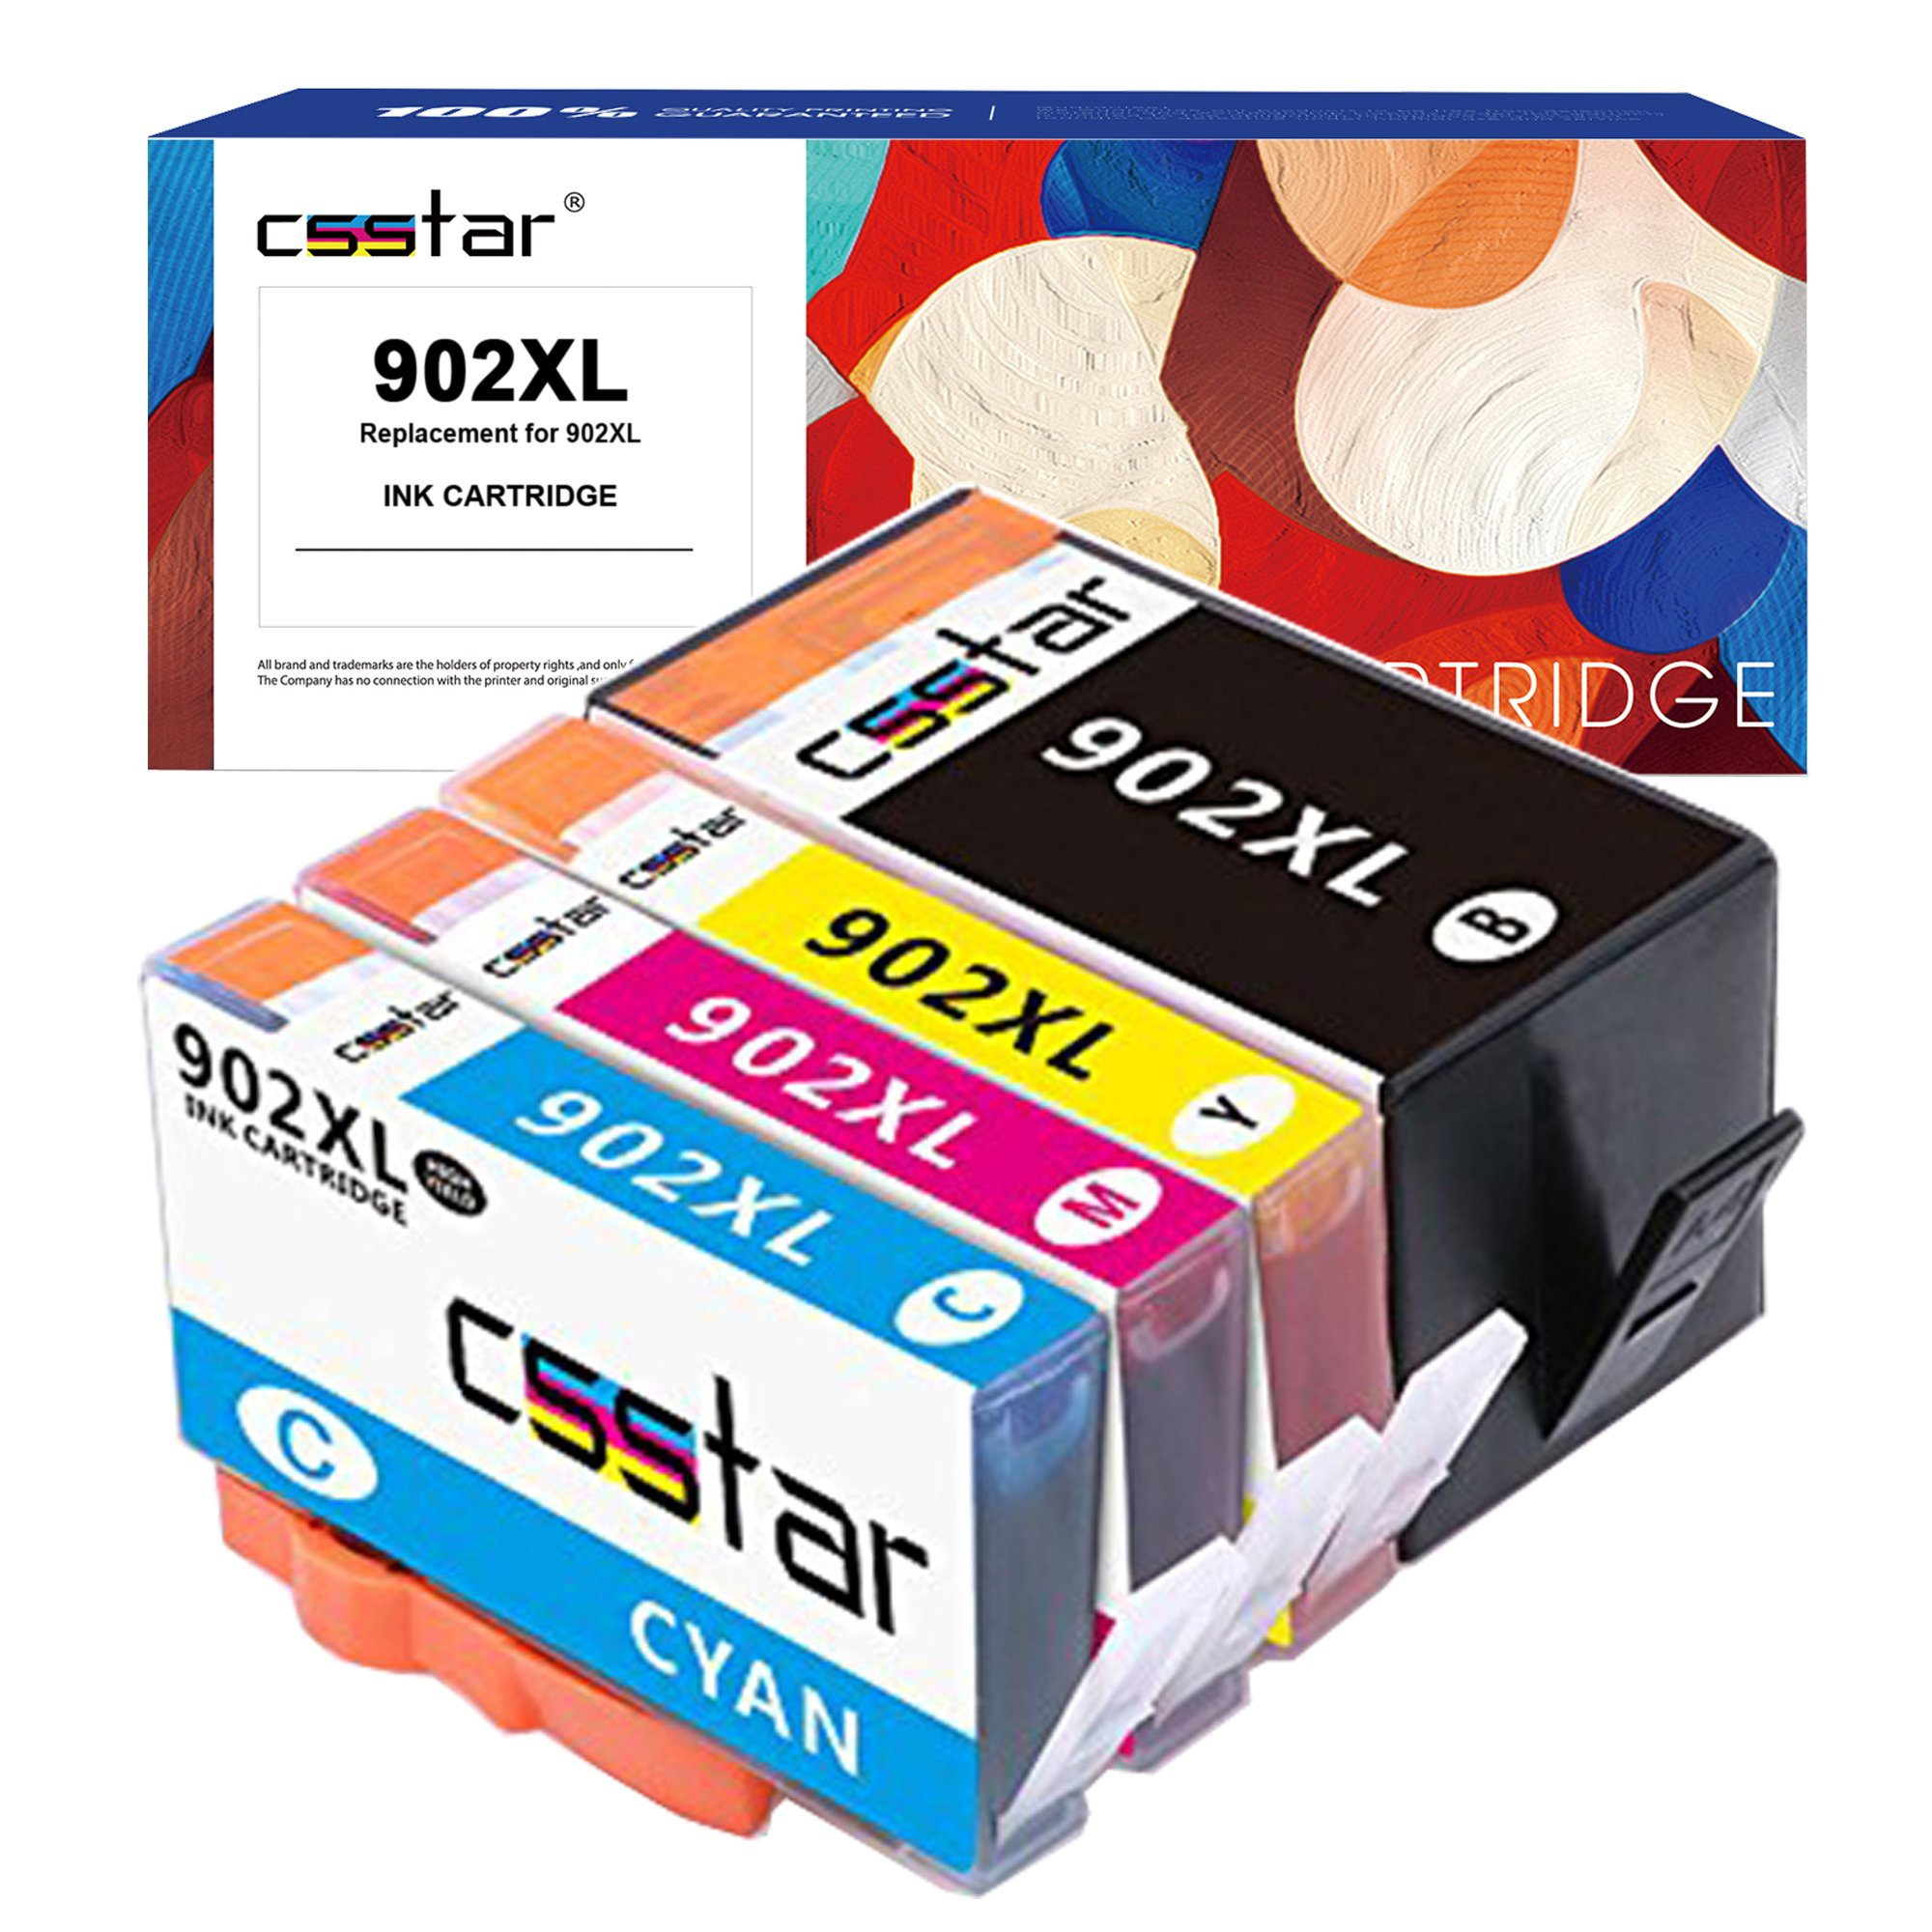 CSSTAR Remanufactured Ink Cartridge Replacement for 902 XL 902XL Combo Pack Use in OfficeJet Pro 6968 6978 6975 6970 6960 6954 6962 6950 6954 Printer - Black, Cyan, Magenta, Yellow